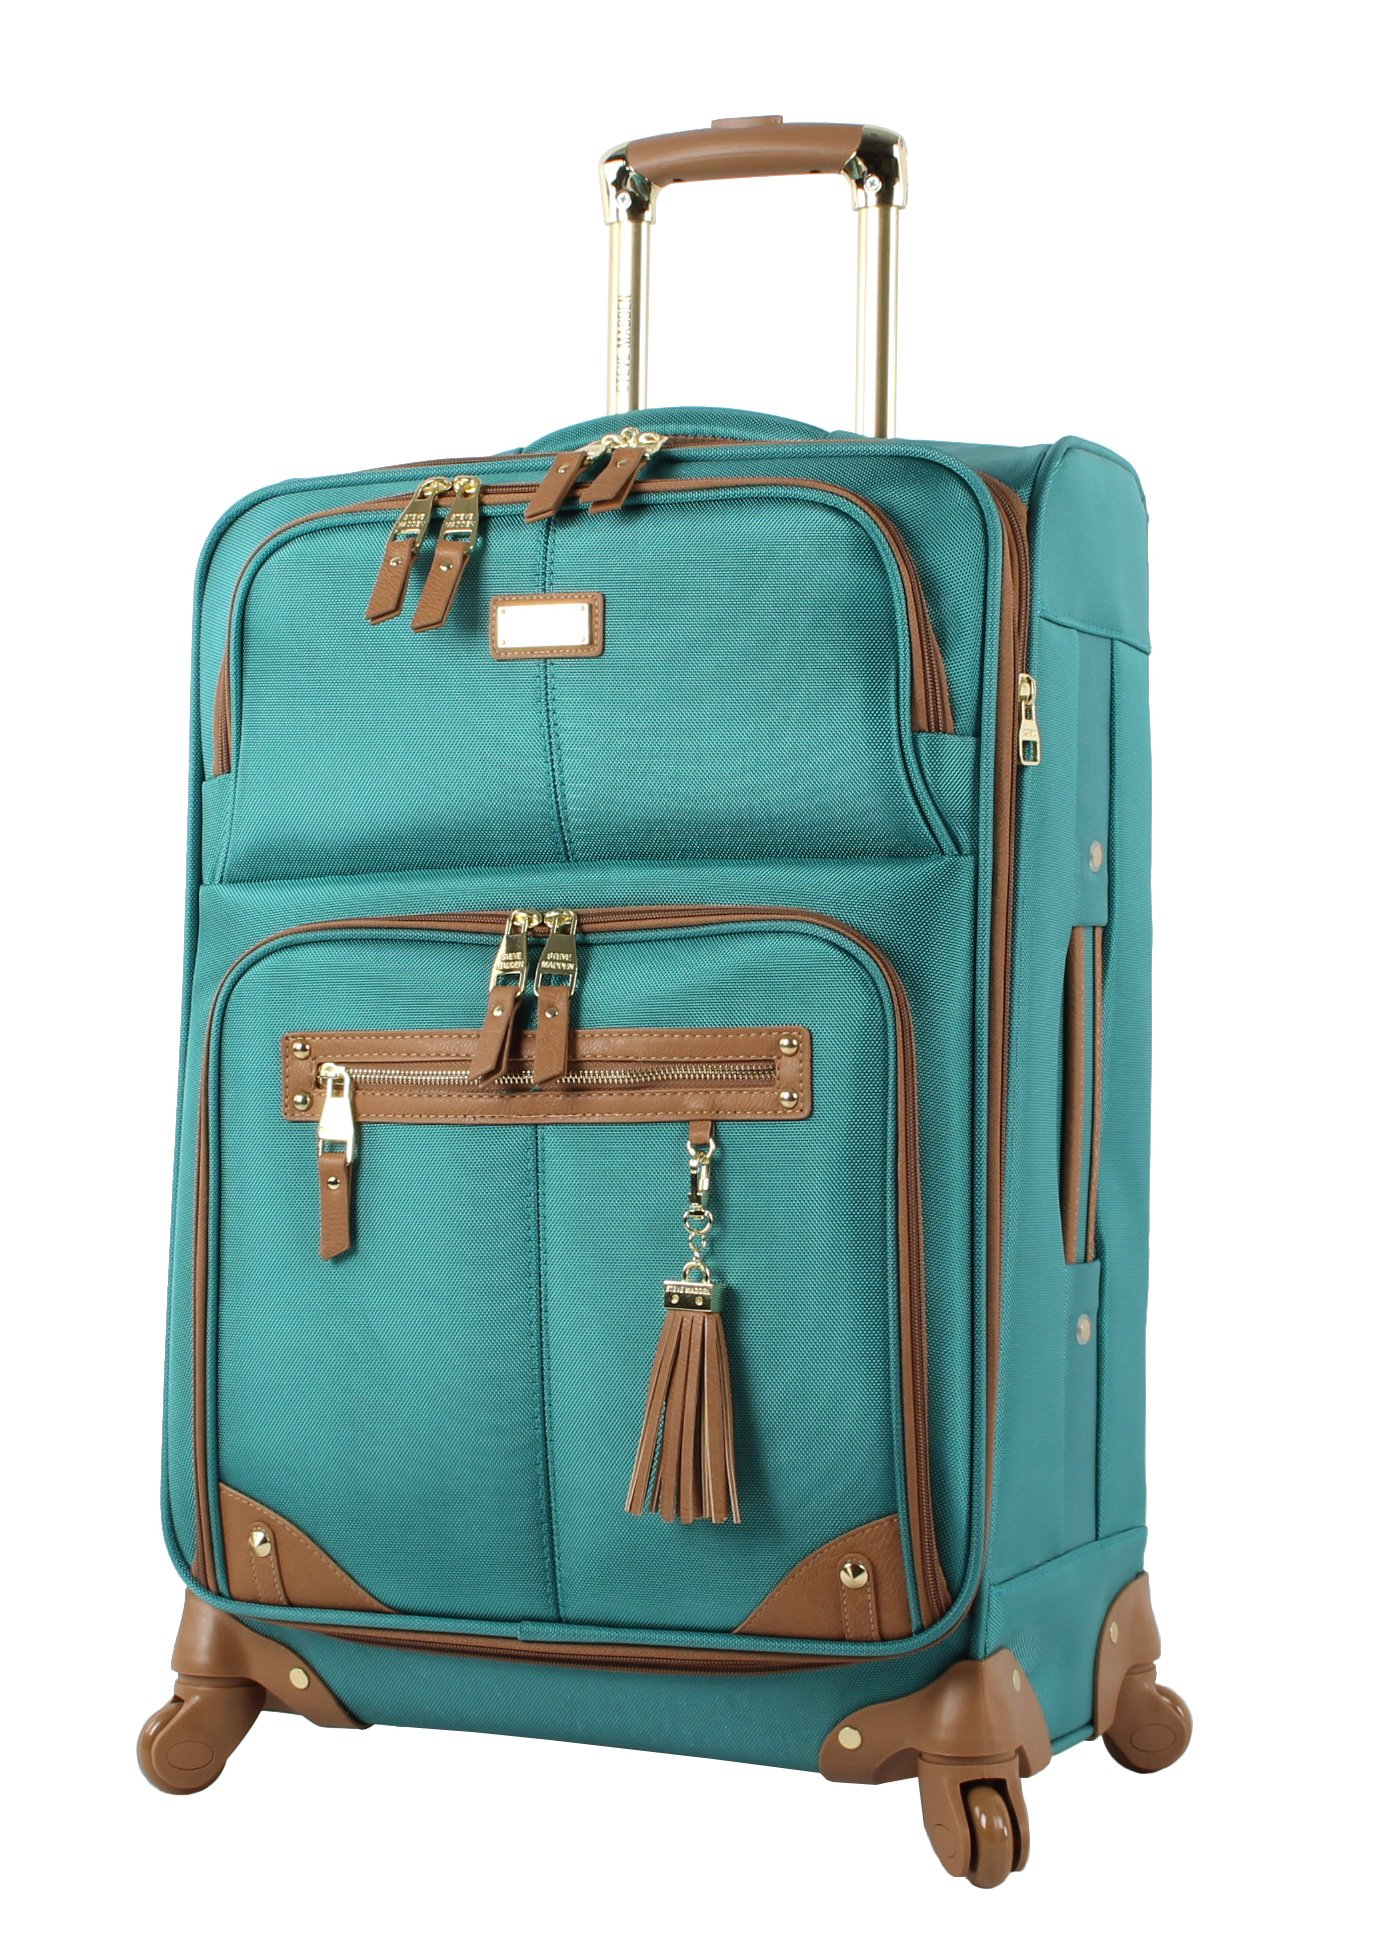 Steve Madden Luggage Large 28'' Expandable Softside Suitcase With Spinner Wheels (28in, Harlo Teal Blue)